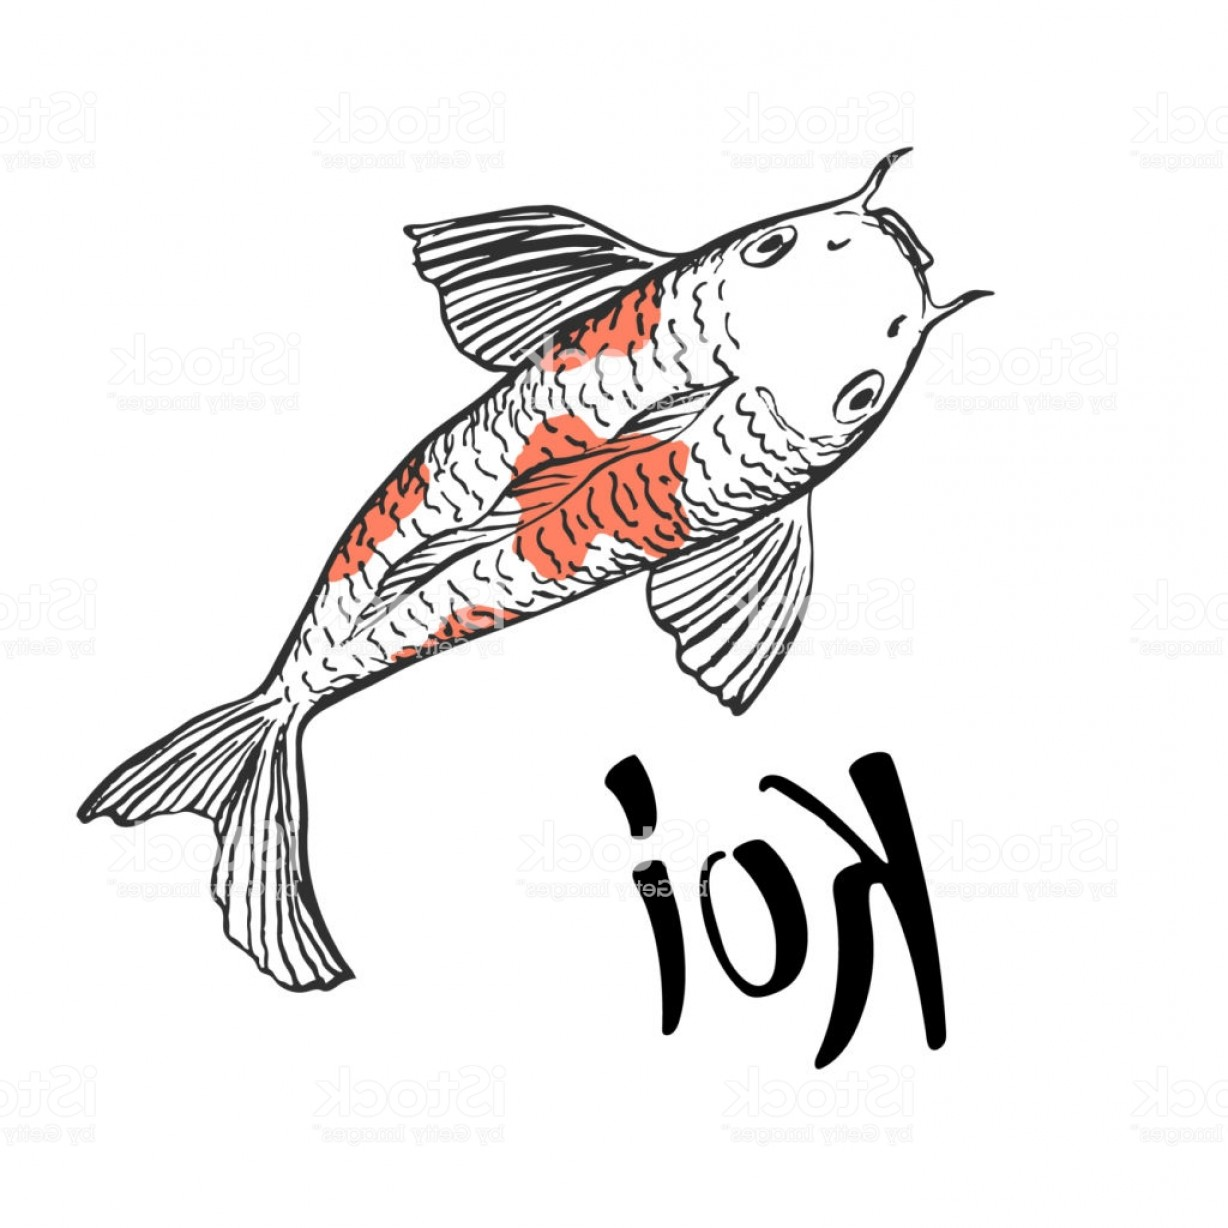 Koi Vector: Koi Fish Illustration With Hand Written Calligraphic Word Koi Gm